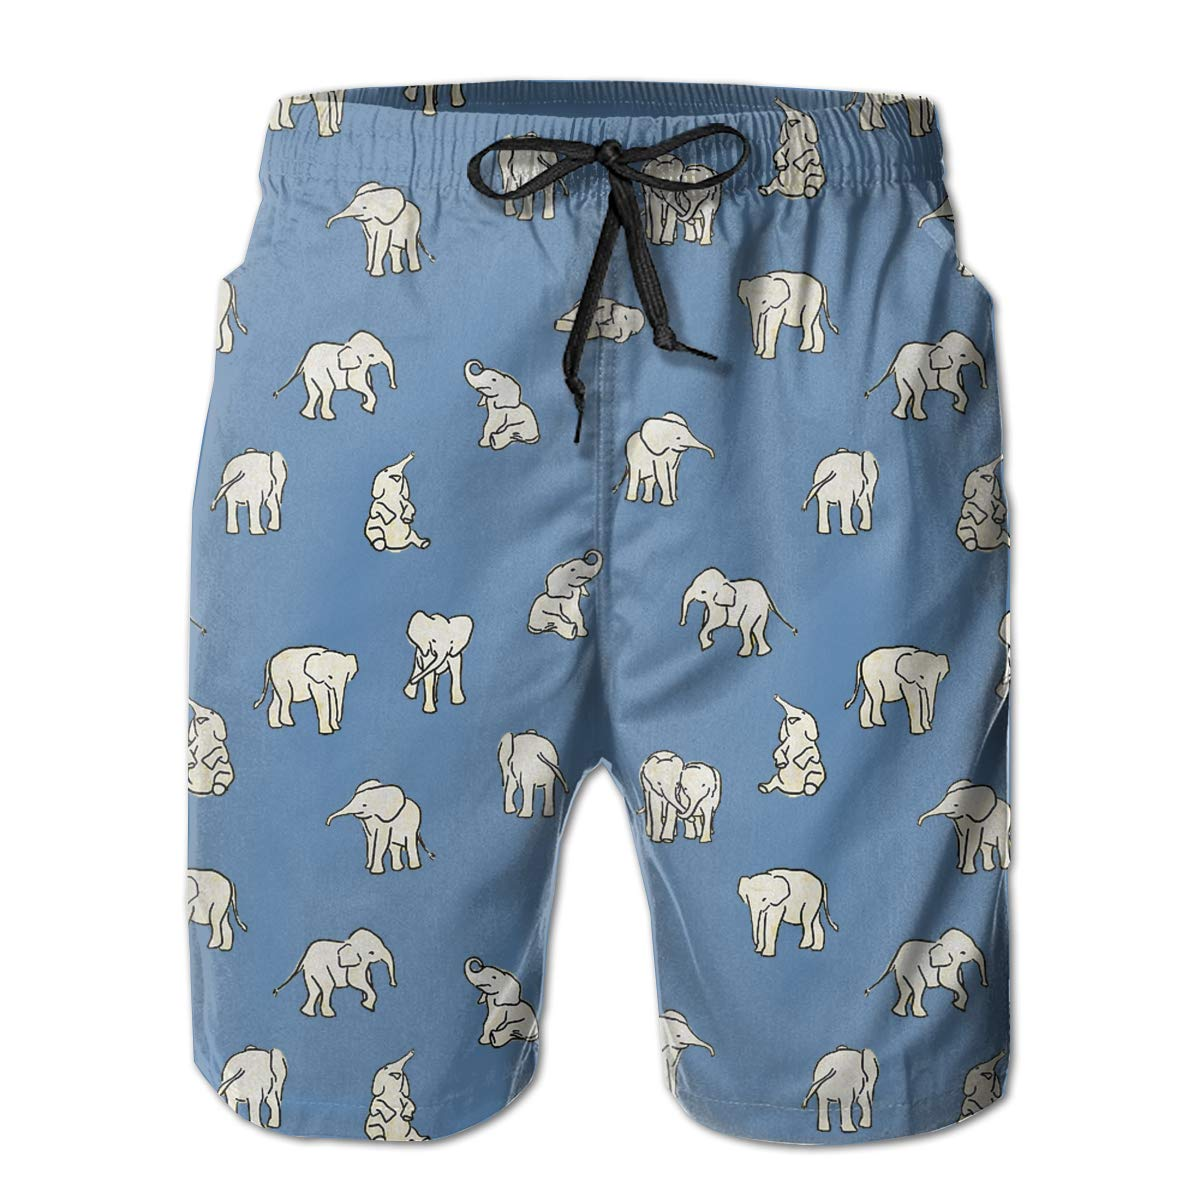 Mikonsu Little Baby Elephants Mens Swim Trunks Quick Dry Bathing Suits Beach Holiday Party Board Shorts White